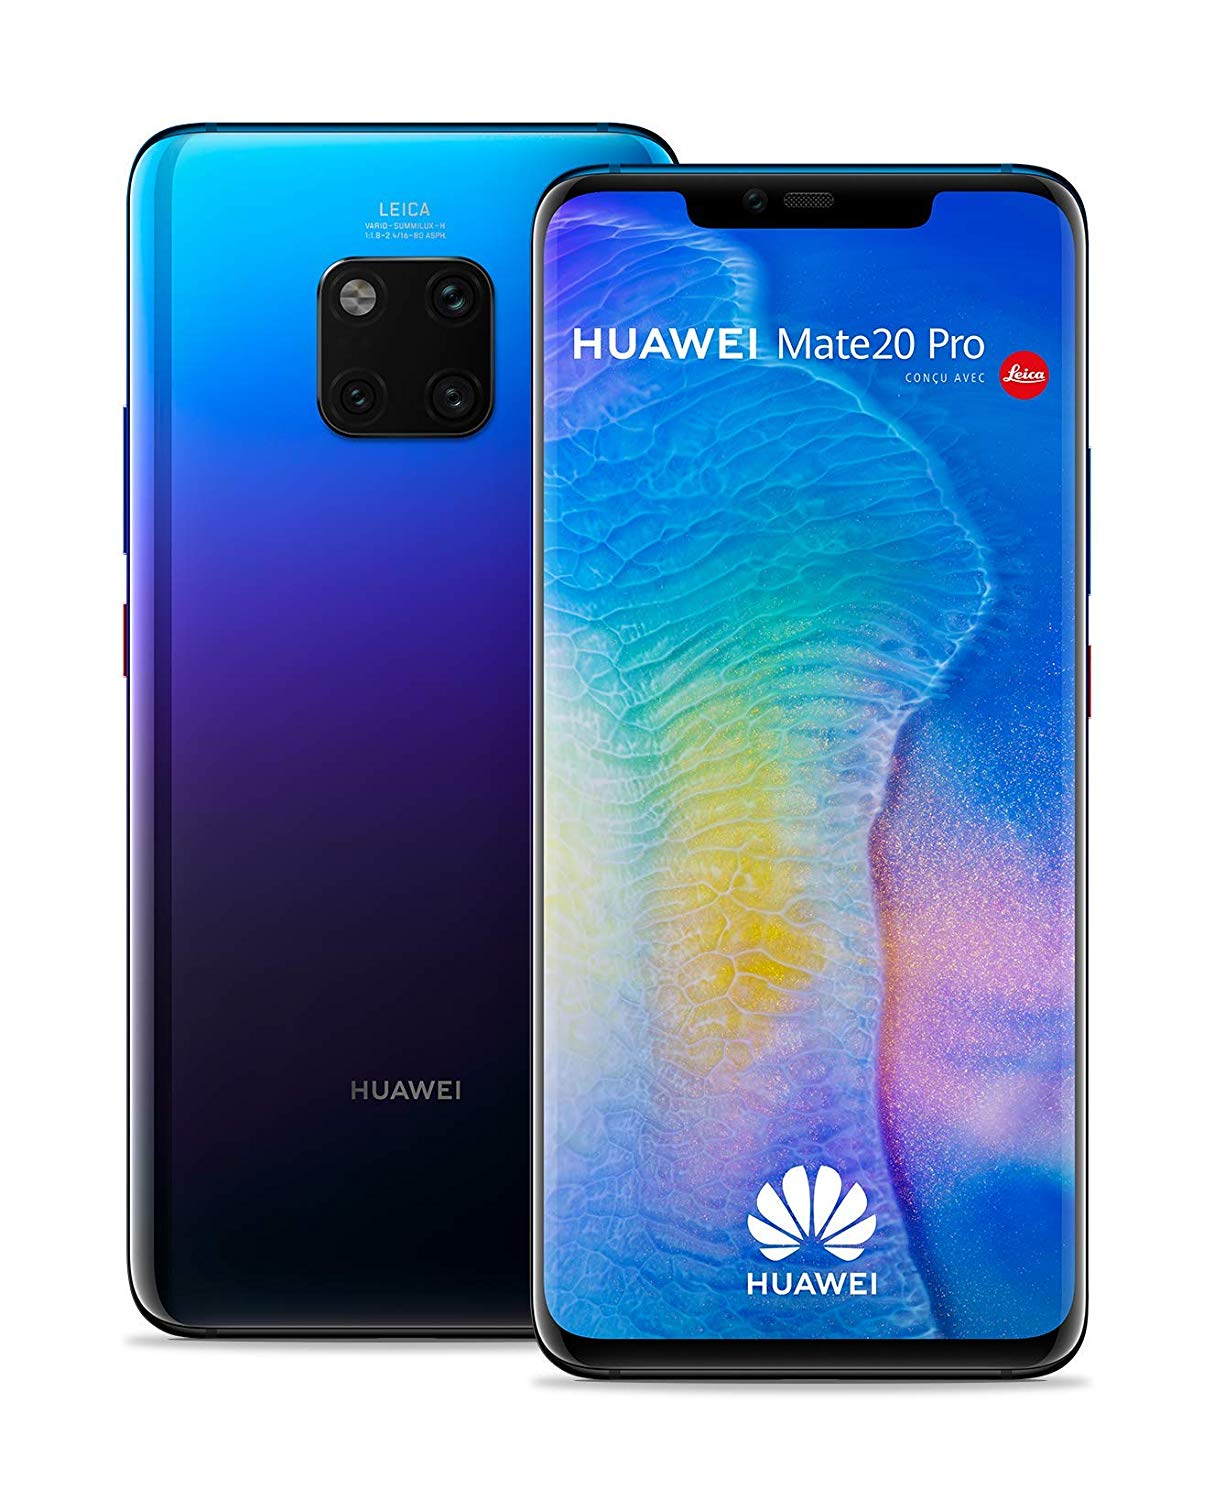 huawei mate 20 pro lya l29 128gb factory unlocked. Black Bedroom Furniture Sets. Home Design Ideas